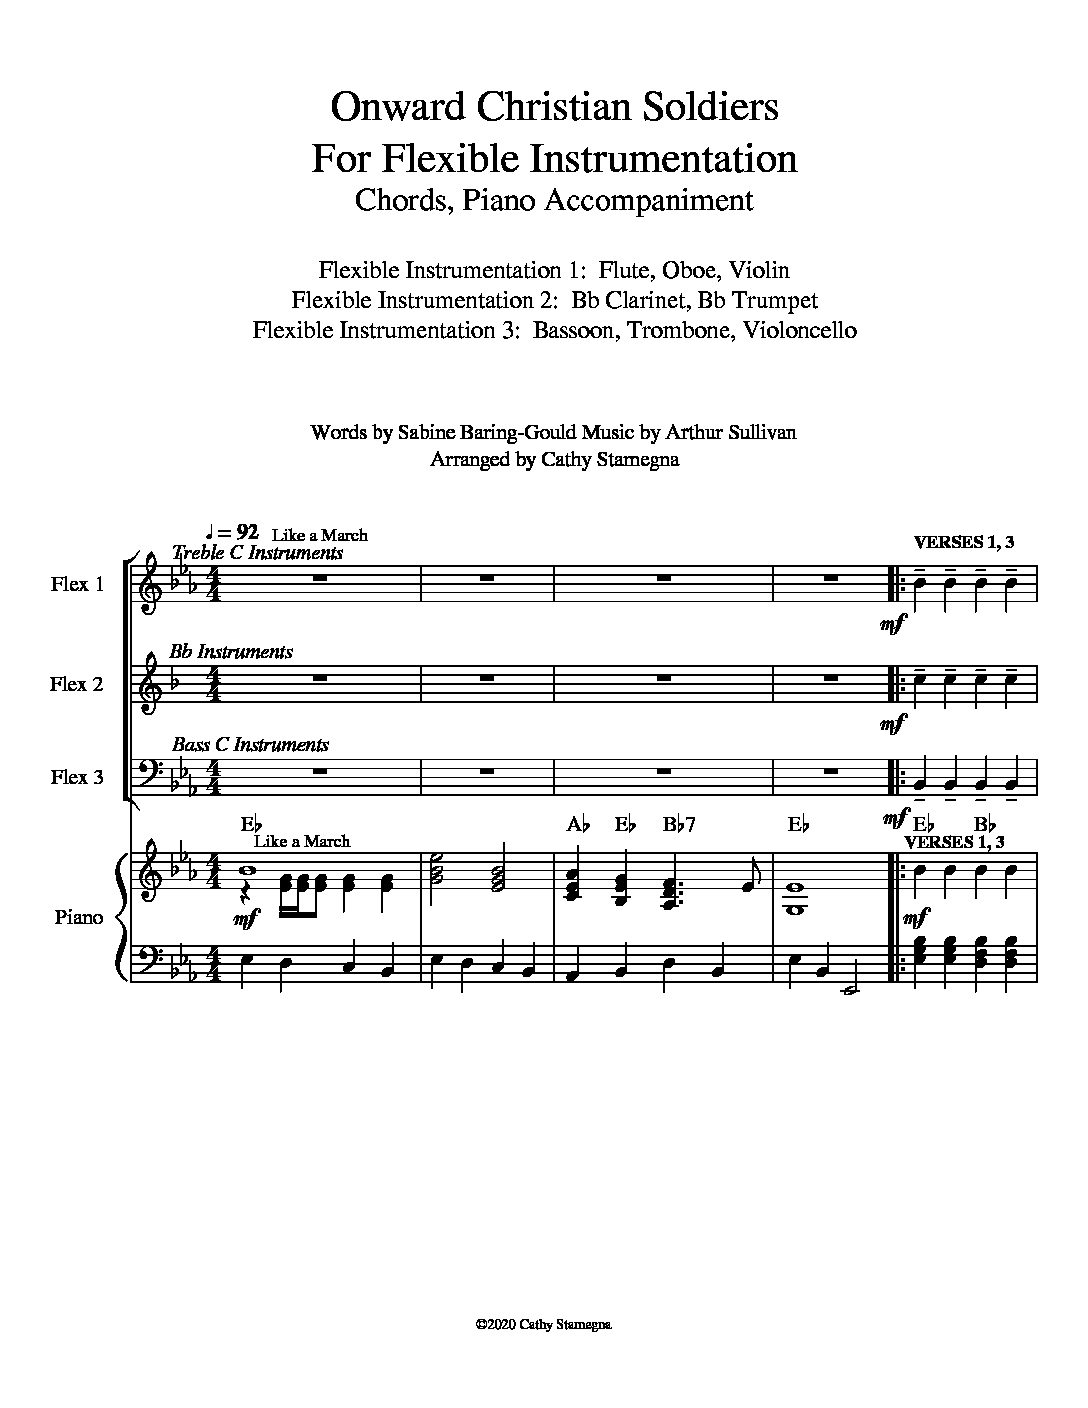 Onward Christian Soldiers (Flexible Instrumentation, Chords, Piano Accompaniment)